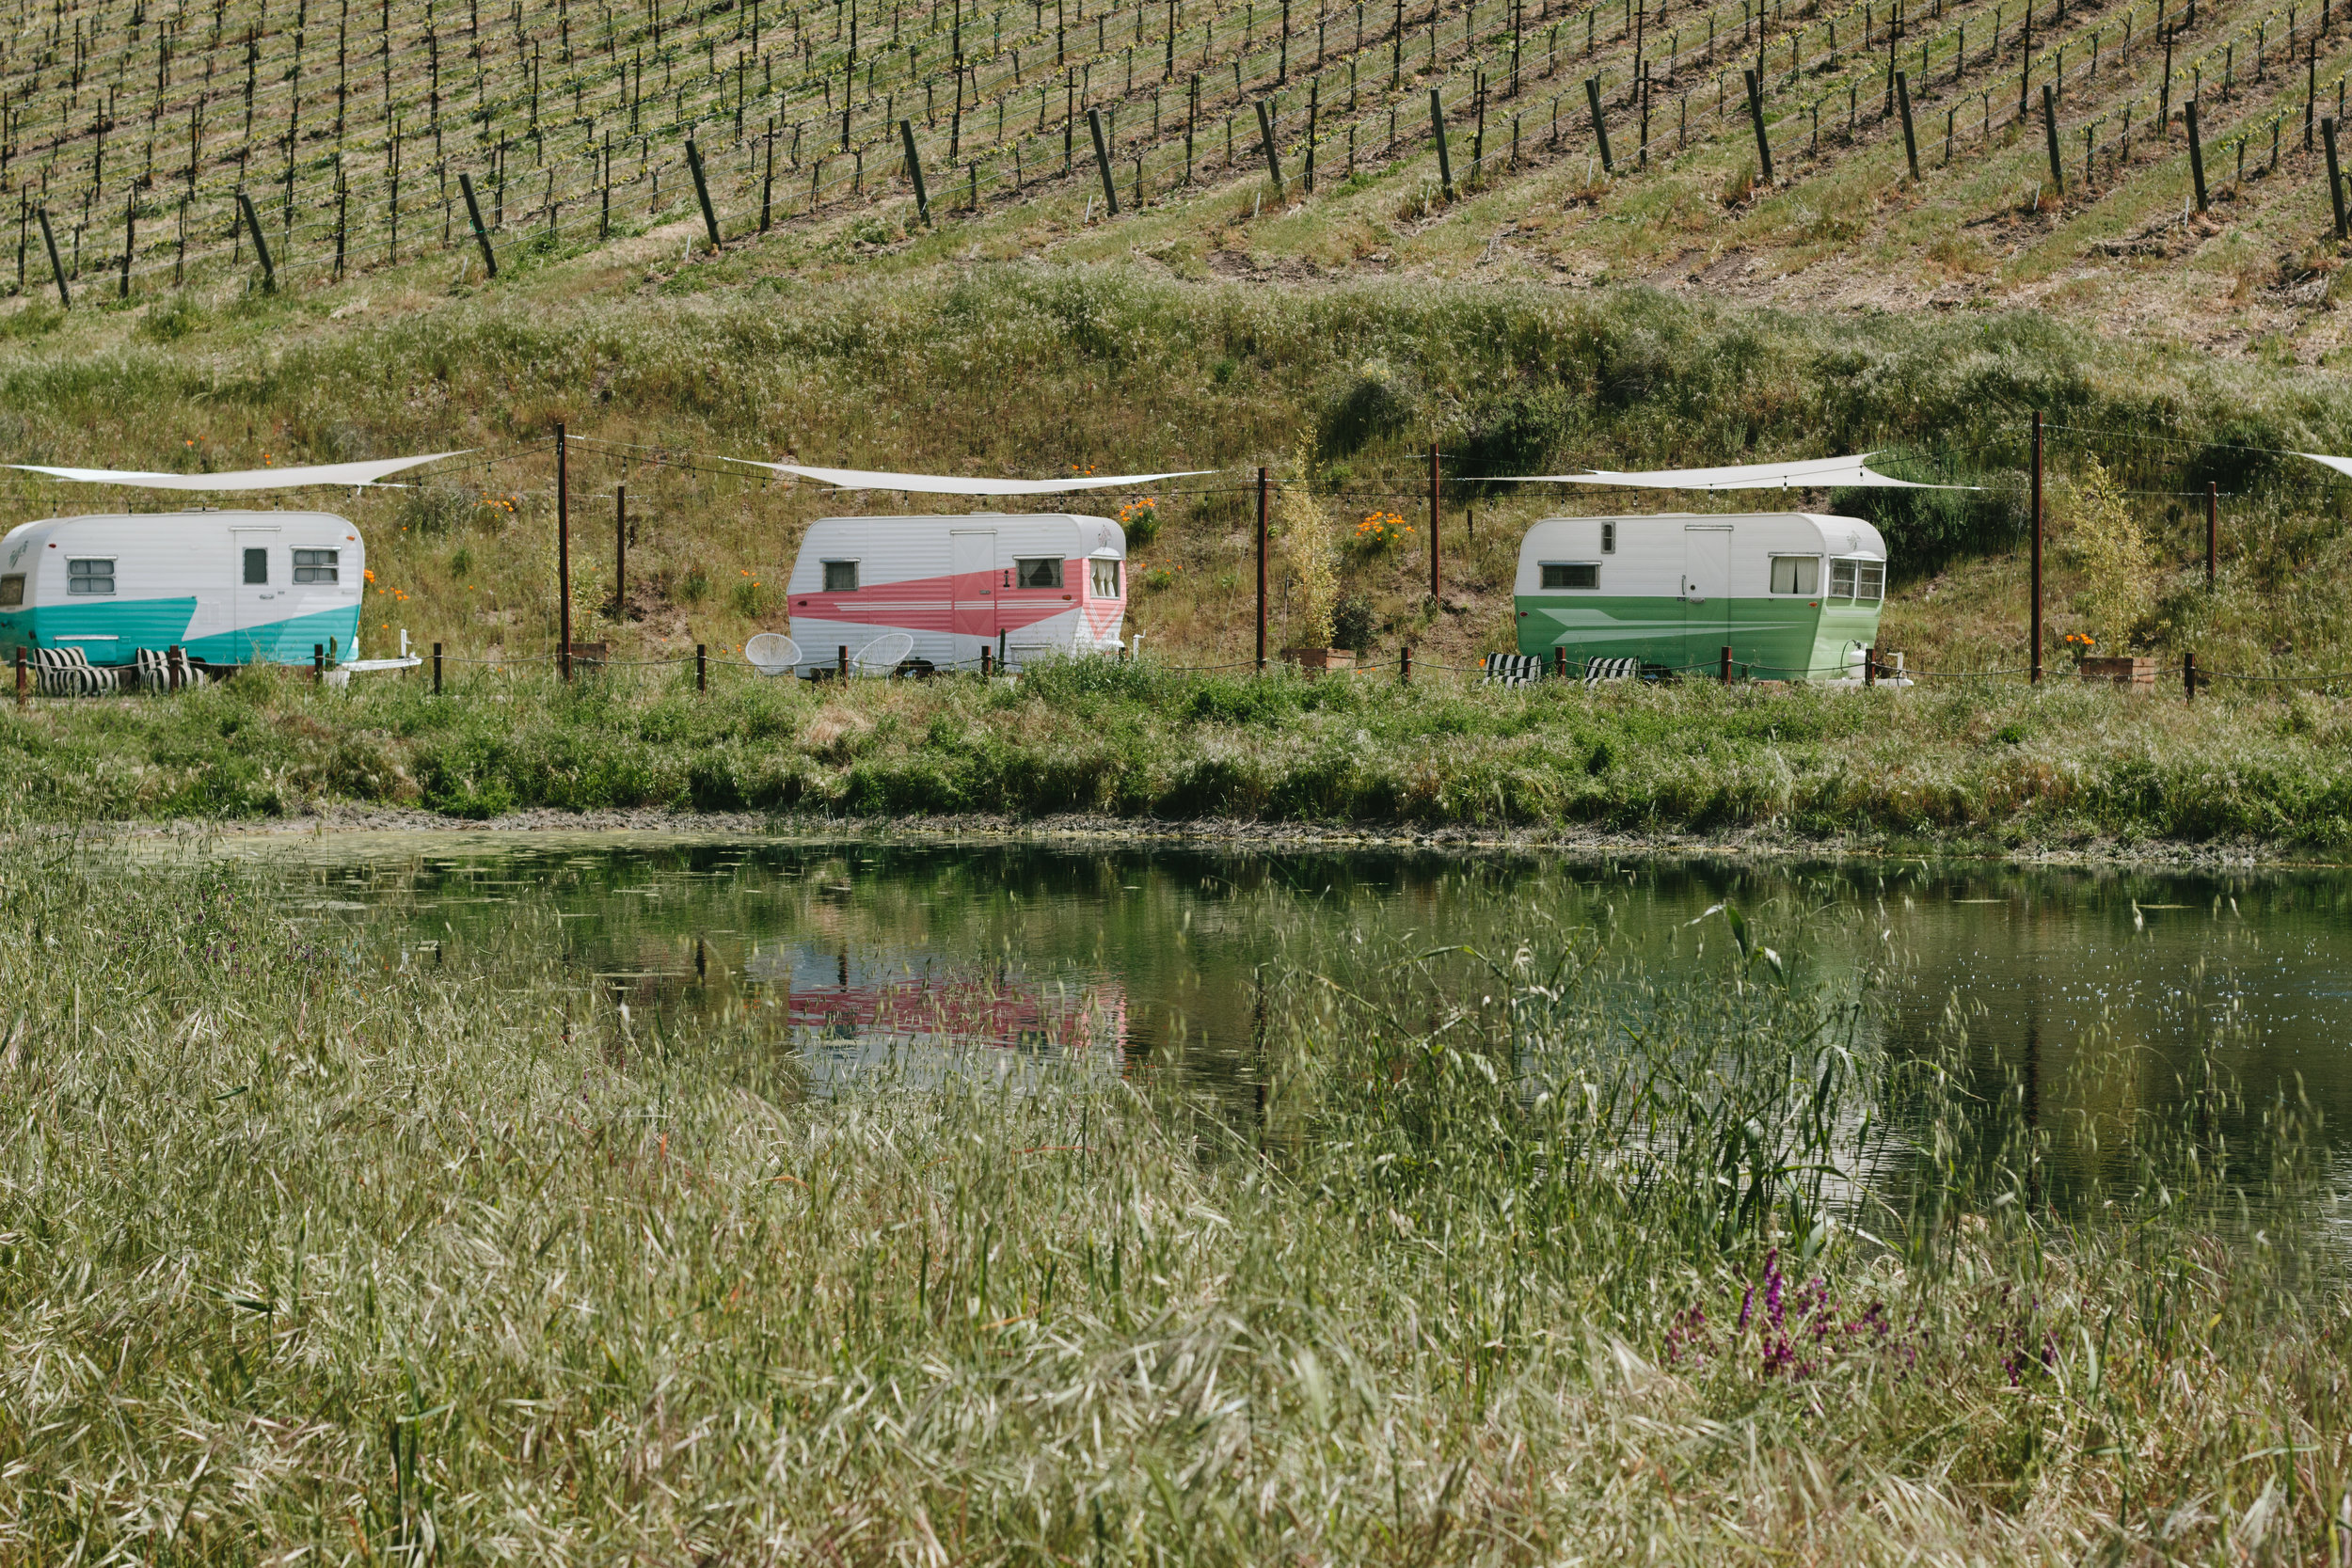 Paso Robles Alta Colina Vineyard Winery Tinker Tin Trailer Pond